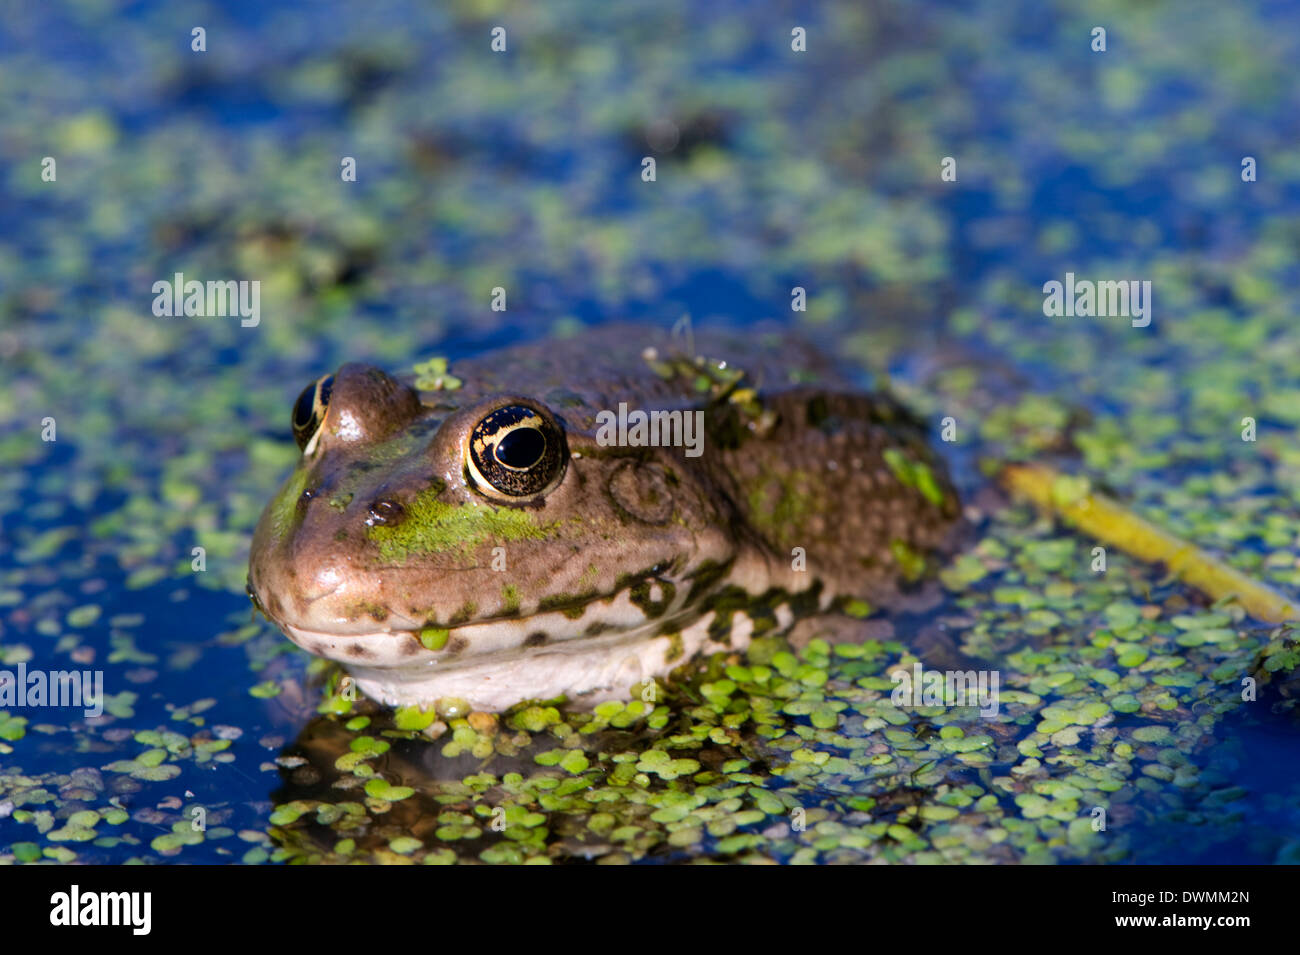 The marsh frog (Pelophylax ridibundu) an escaped garden alien introduced to Kent in 1935, England, United Kingdom, Europe - Stock Image